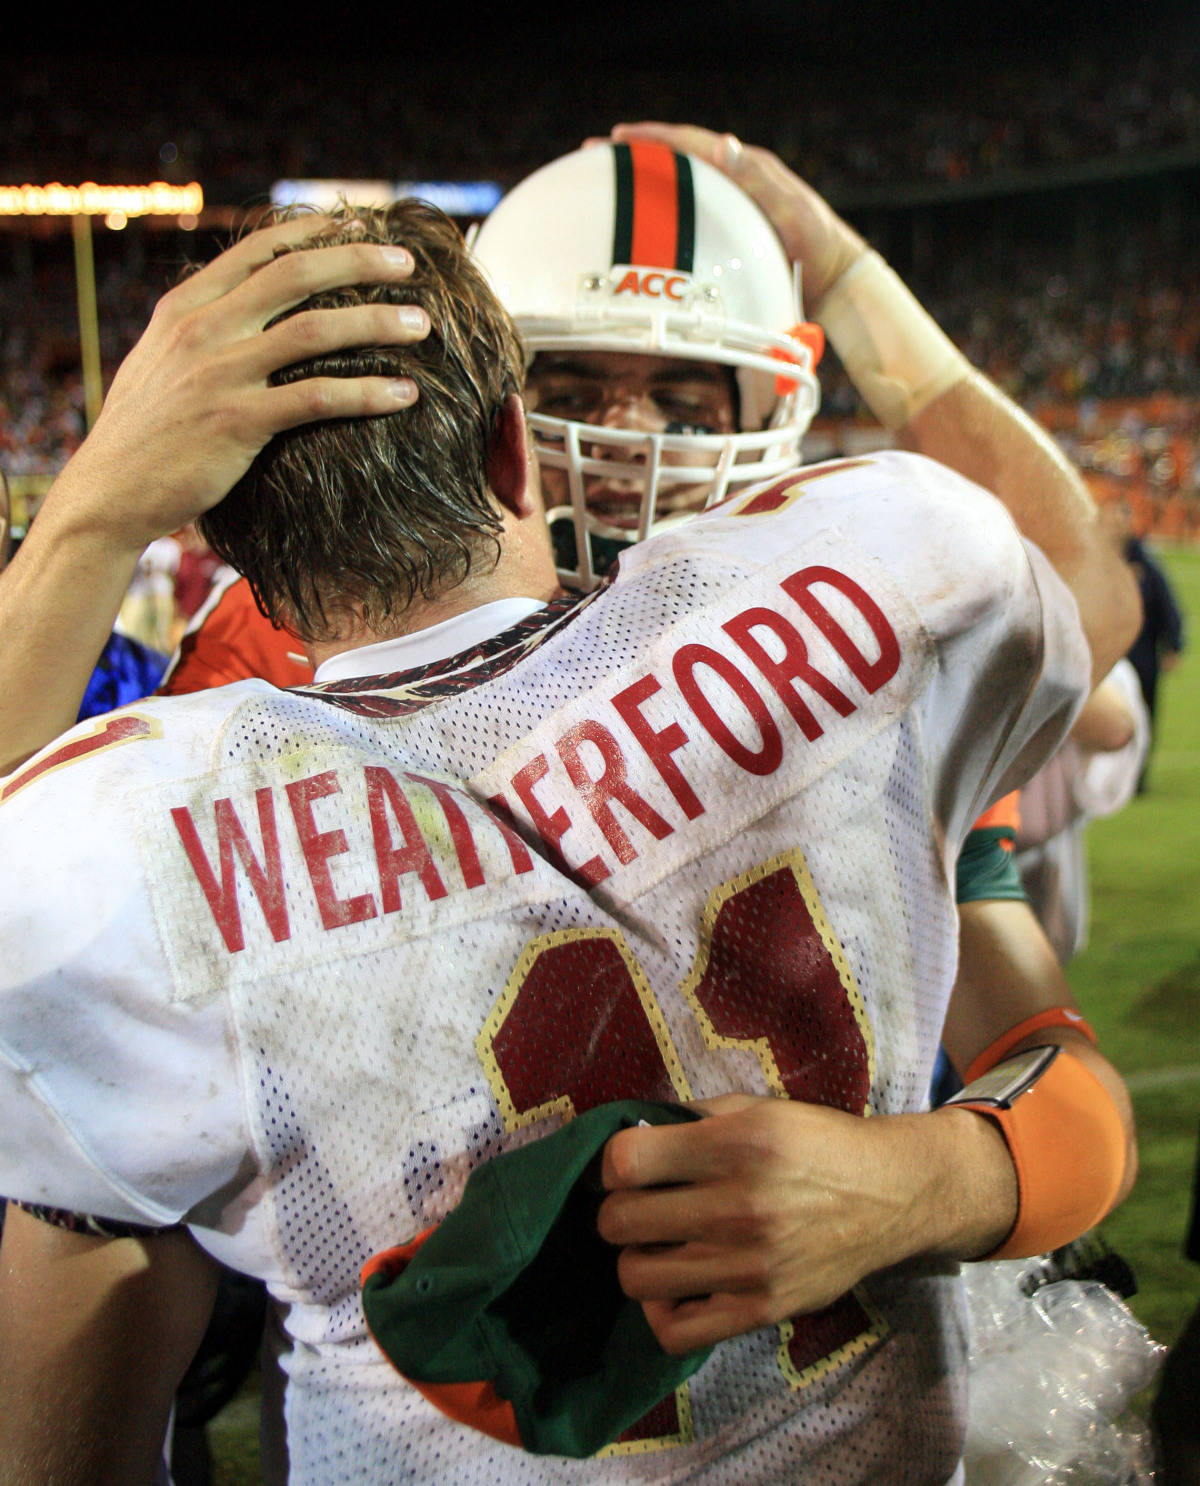 Miami backup quarterback Kirby Freeman, rear, congratulates Florida State quarterback Drew Weatherford after Florida State defeated Miami 13-10 Monday, Sept. 4, 2006 at the Orange Bowl in Miami. (AP Photo/Luis M. Alvarez)